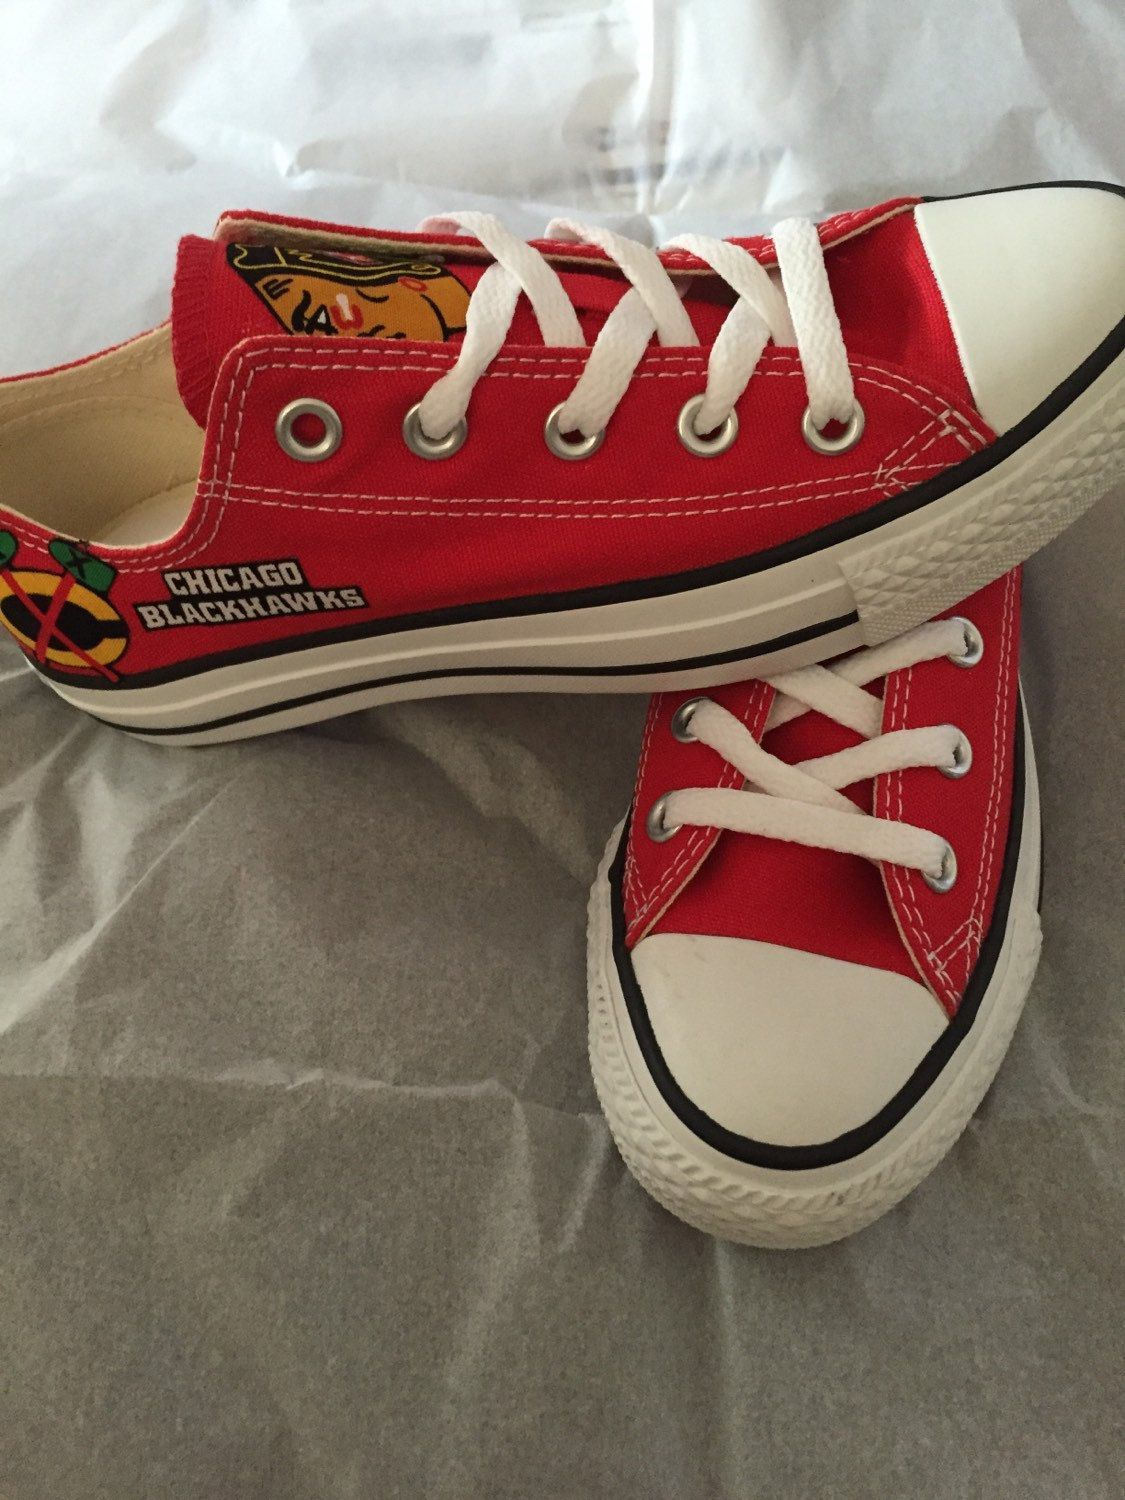 new concept 58cc0 cc936 Chicago Blackhawks Converse Shoes Blackhawks Converse NHL Shoes